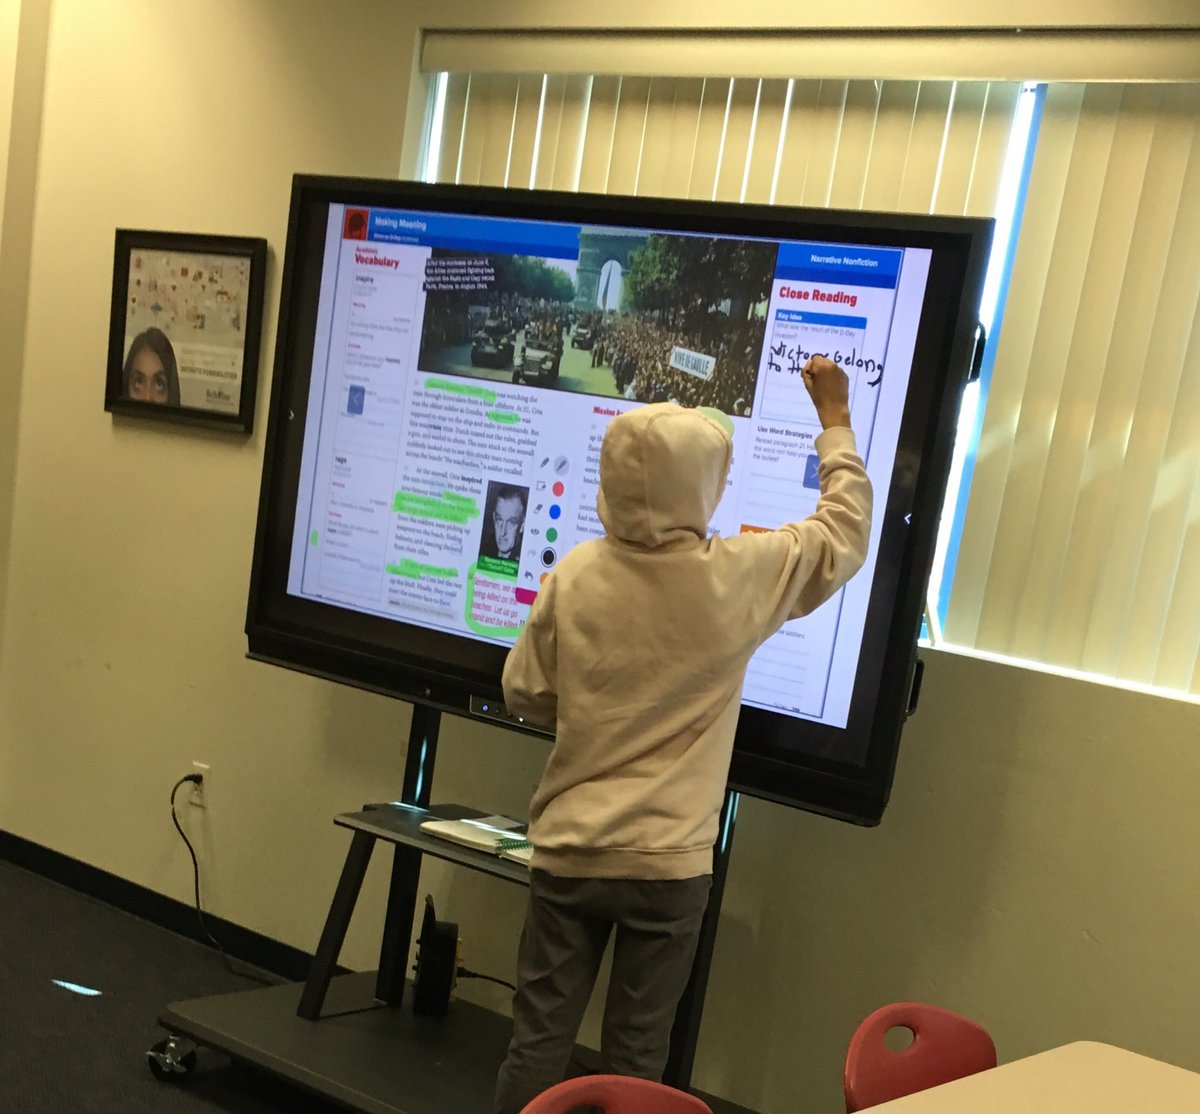 .@puhsd Ss show mad annotating skills on the Promethean #HeritageHSpats #hhslegacy